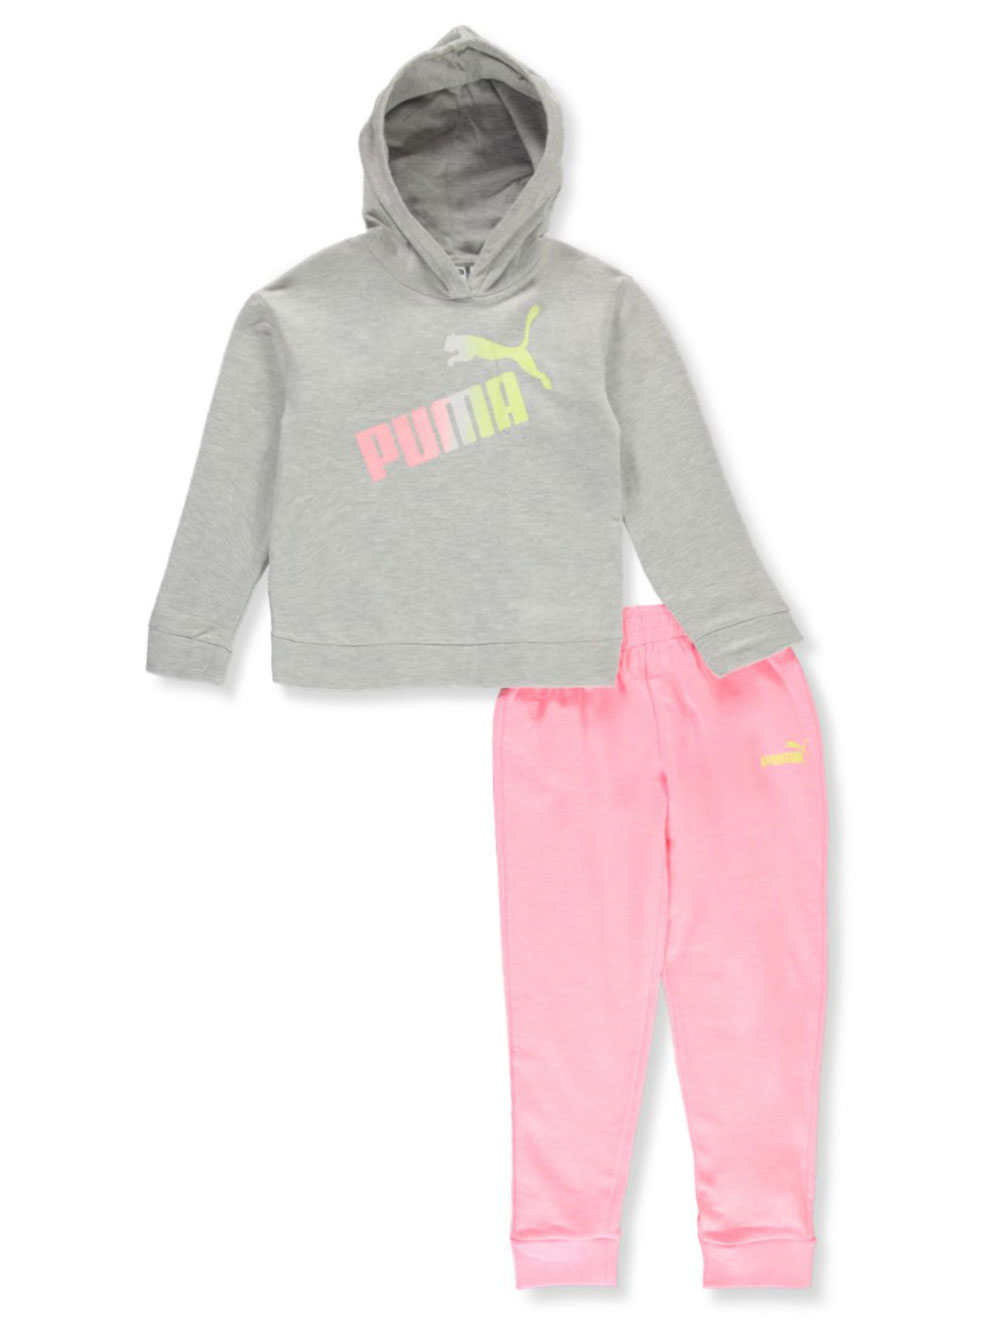 Girls Charcoal Gray Sets